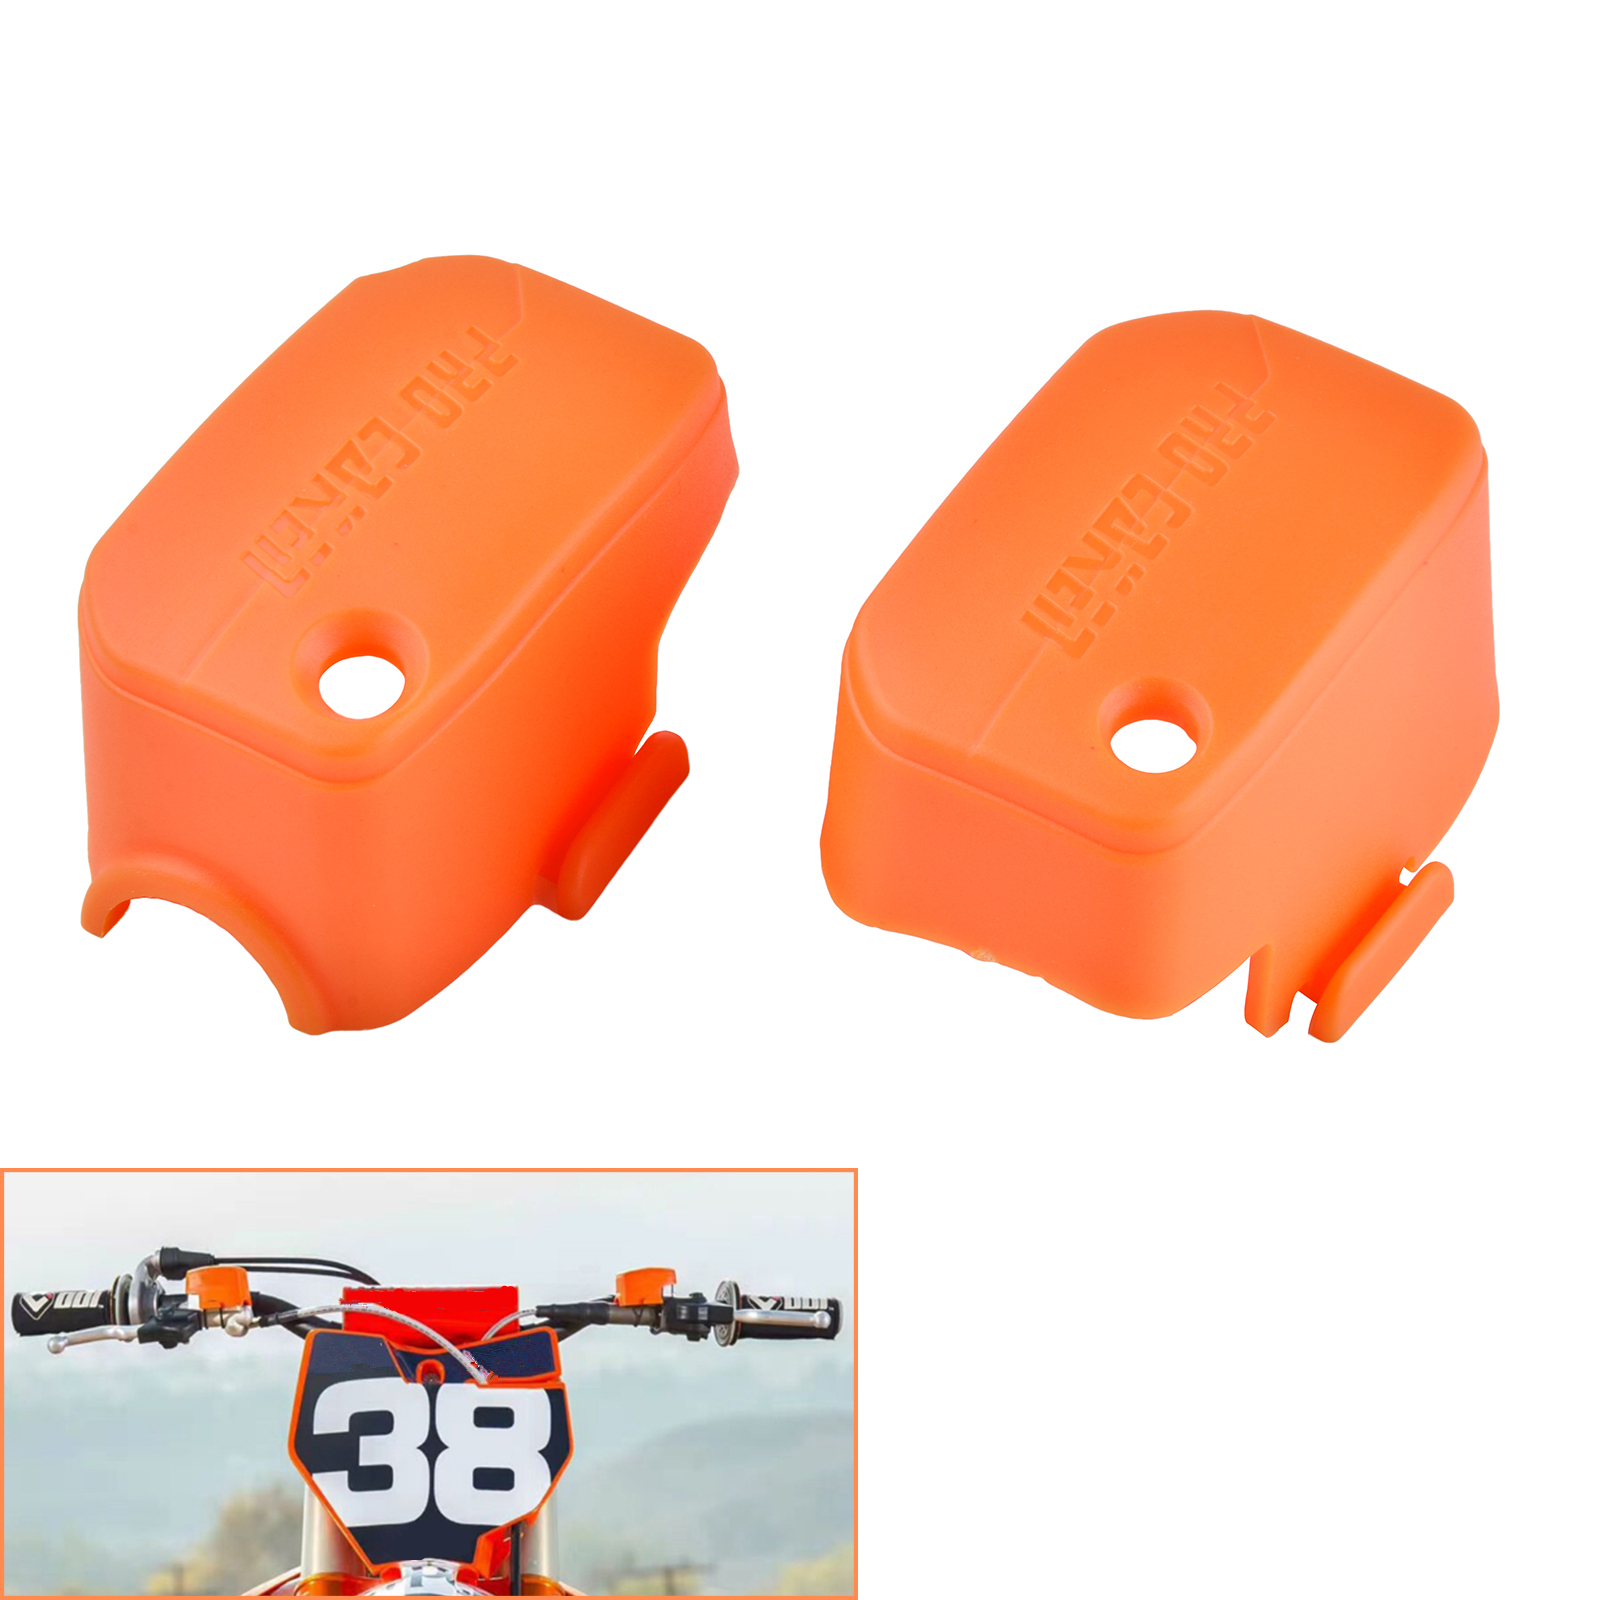 Rimozione forcella anteriore WP Compression Valve strumento for KTM SX SXF XC XCF 125 200 250 300 350 400 450 2017 2018 Fork Cap Puller Strumenti Color : Orange